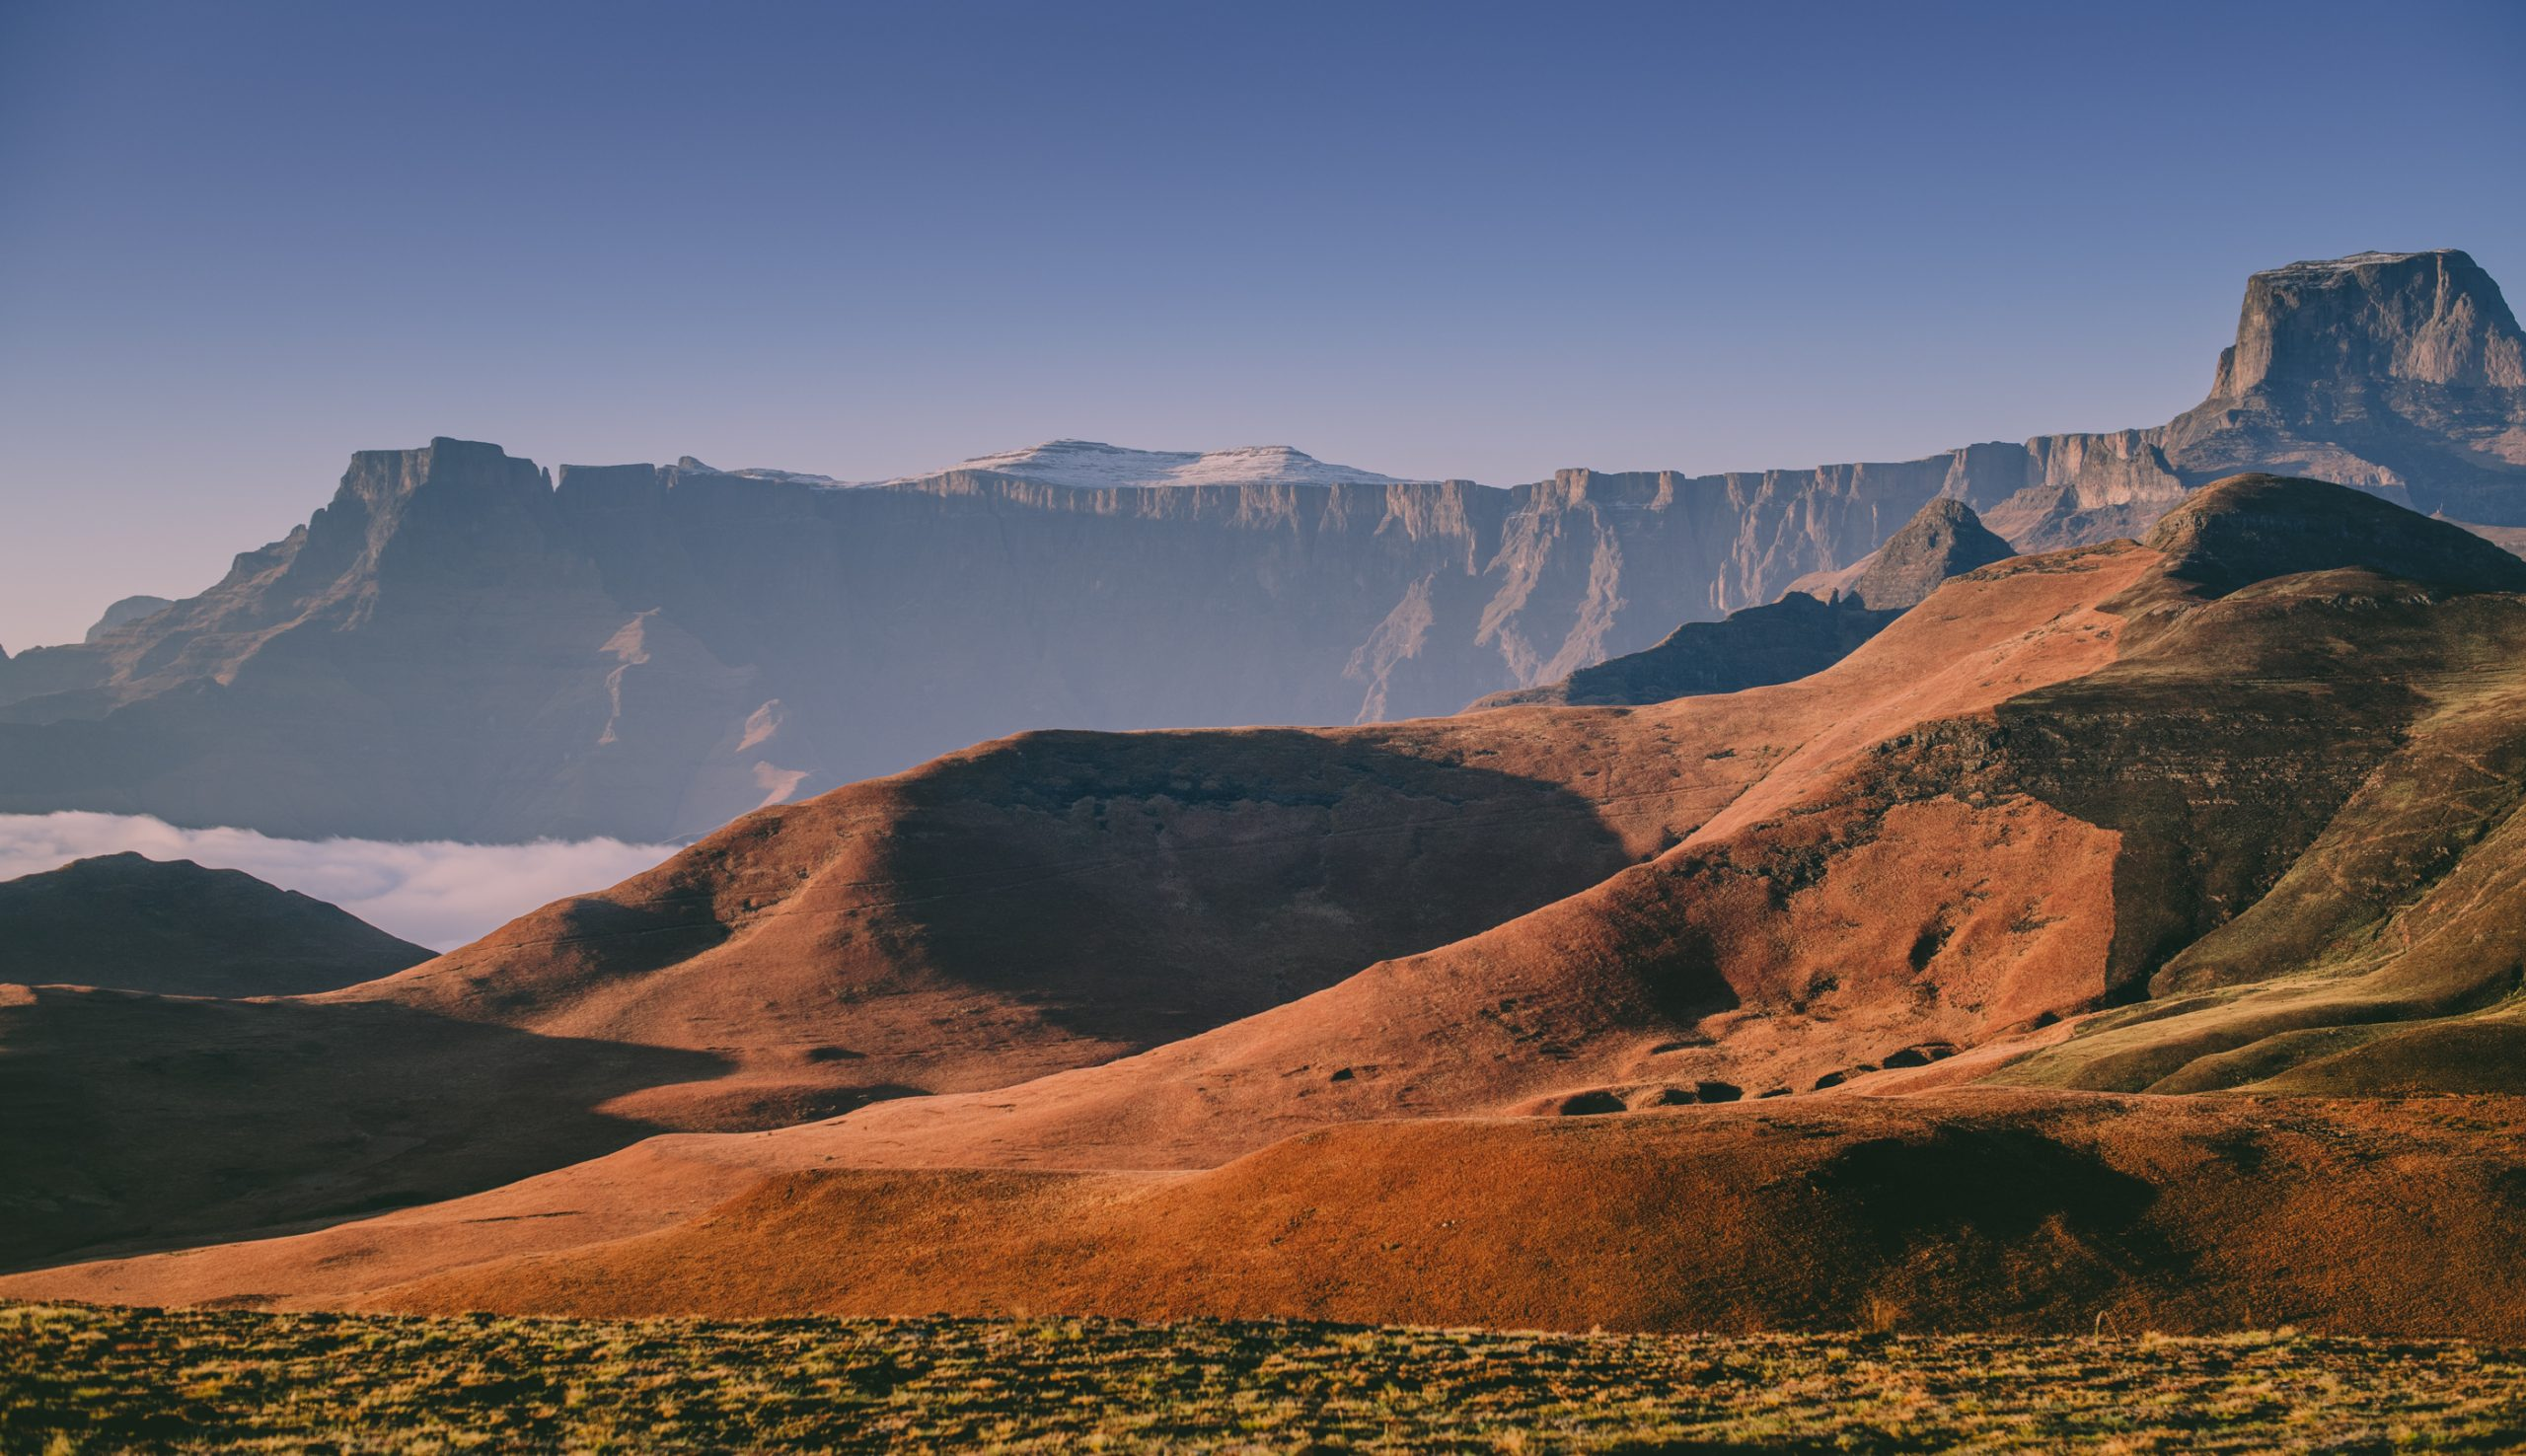 Rain Snow, wind and endless views. Mont Aux Sources challenge 2019 had it all! 3 Am wake up calls is made easy when one knows you're heading into the majestic Drakensberg! Monties as it's become known always delivers, and this year was off course no different! Early morning mist in the valleys below with the […]